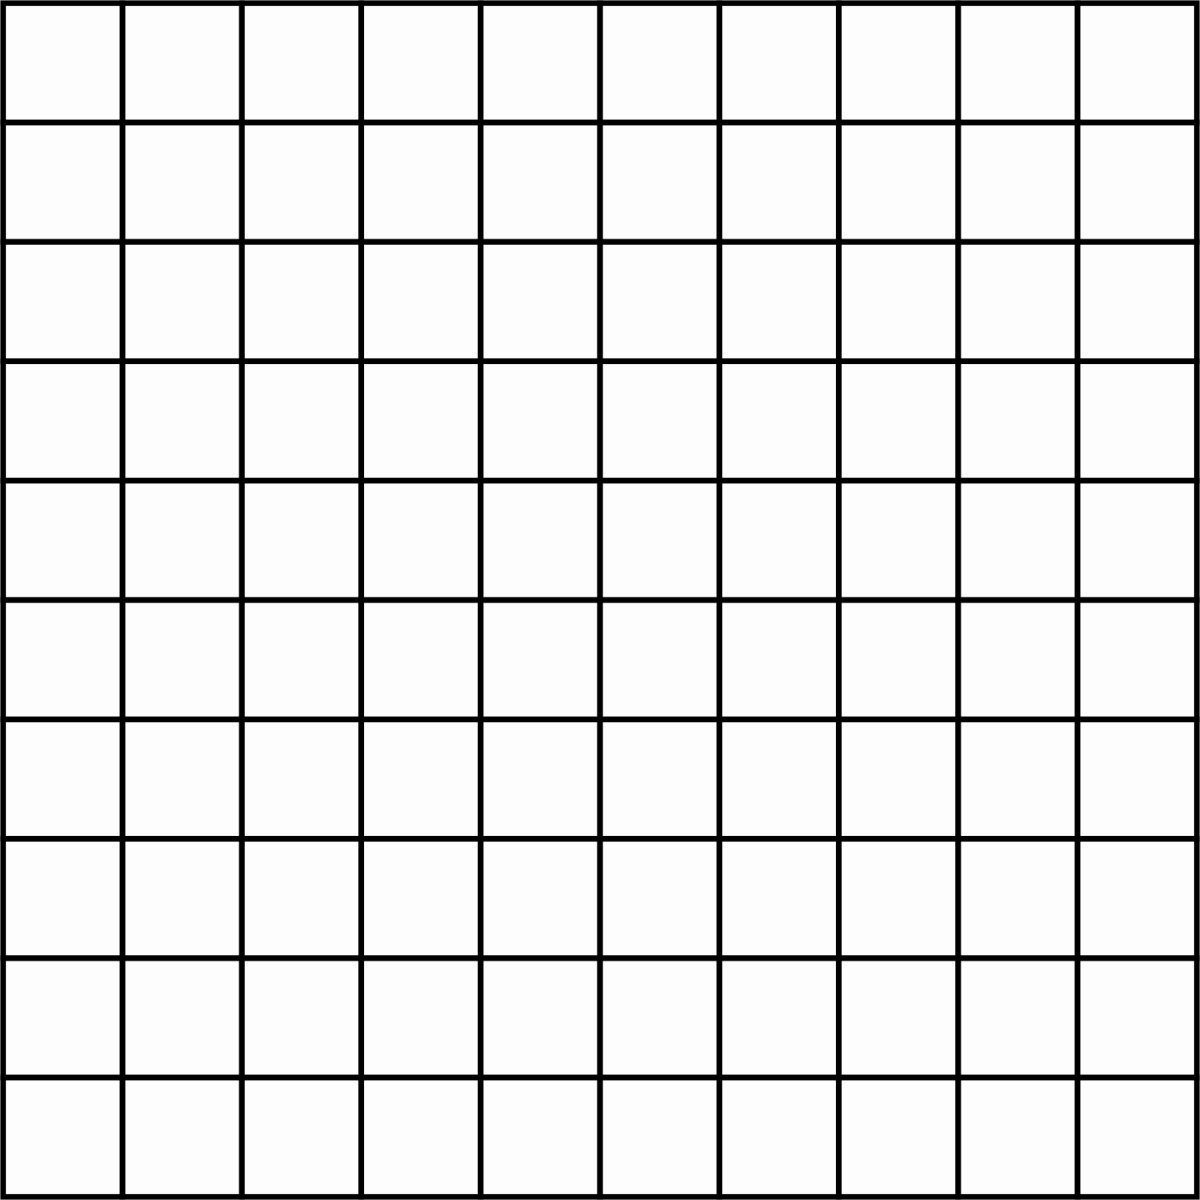 Figure 2: the game grid